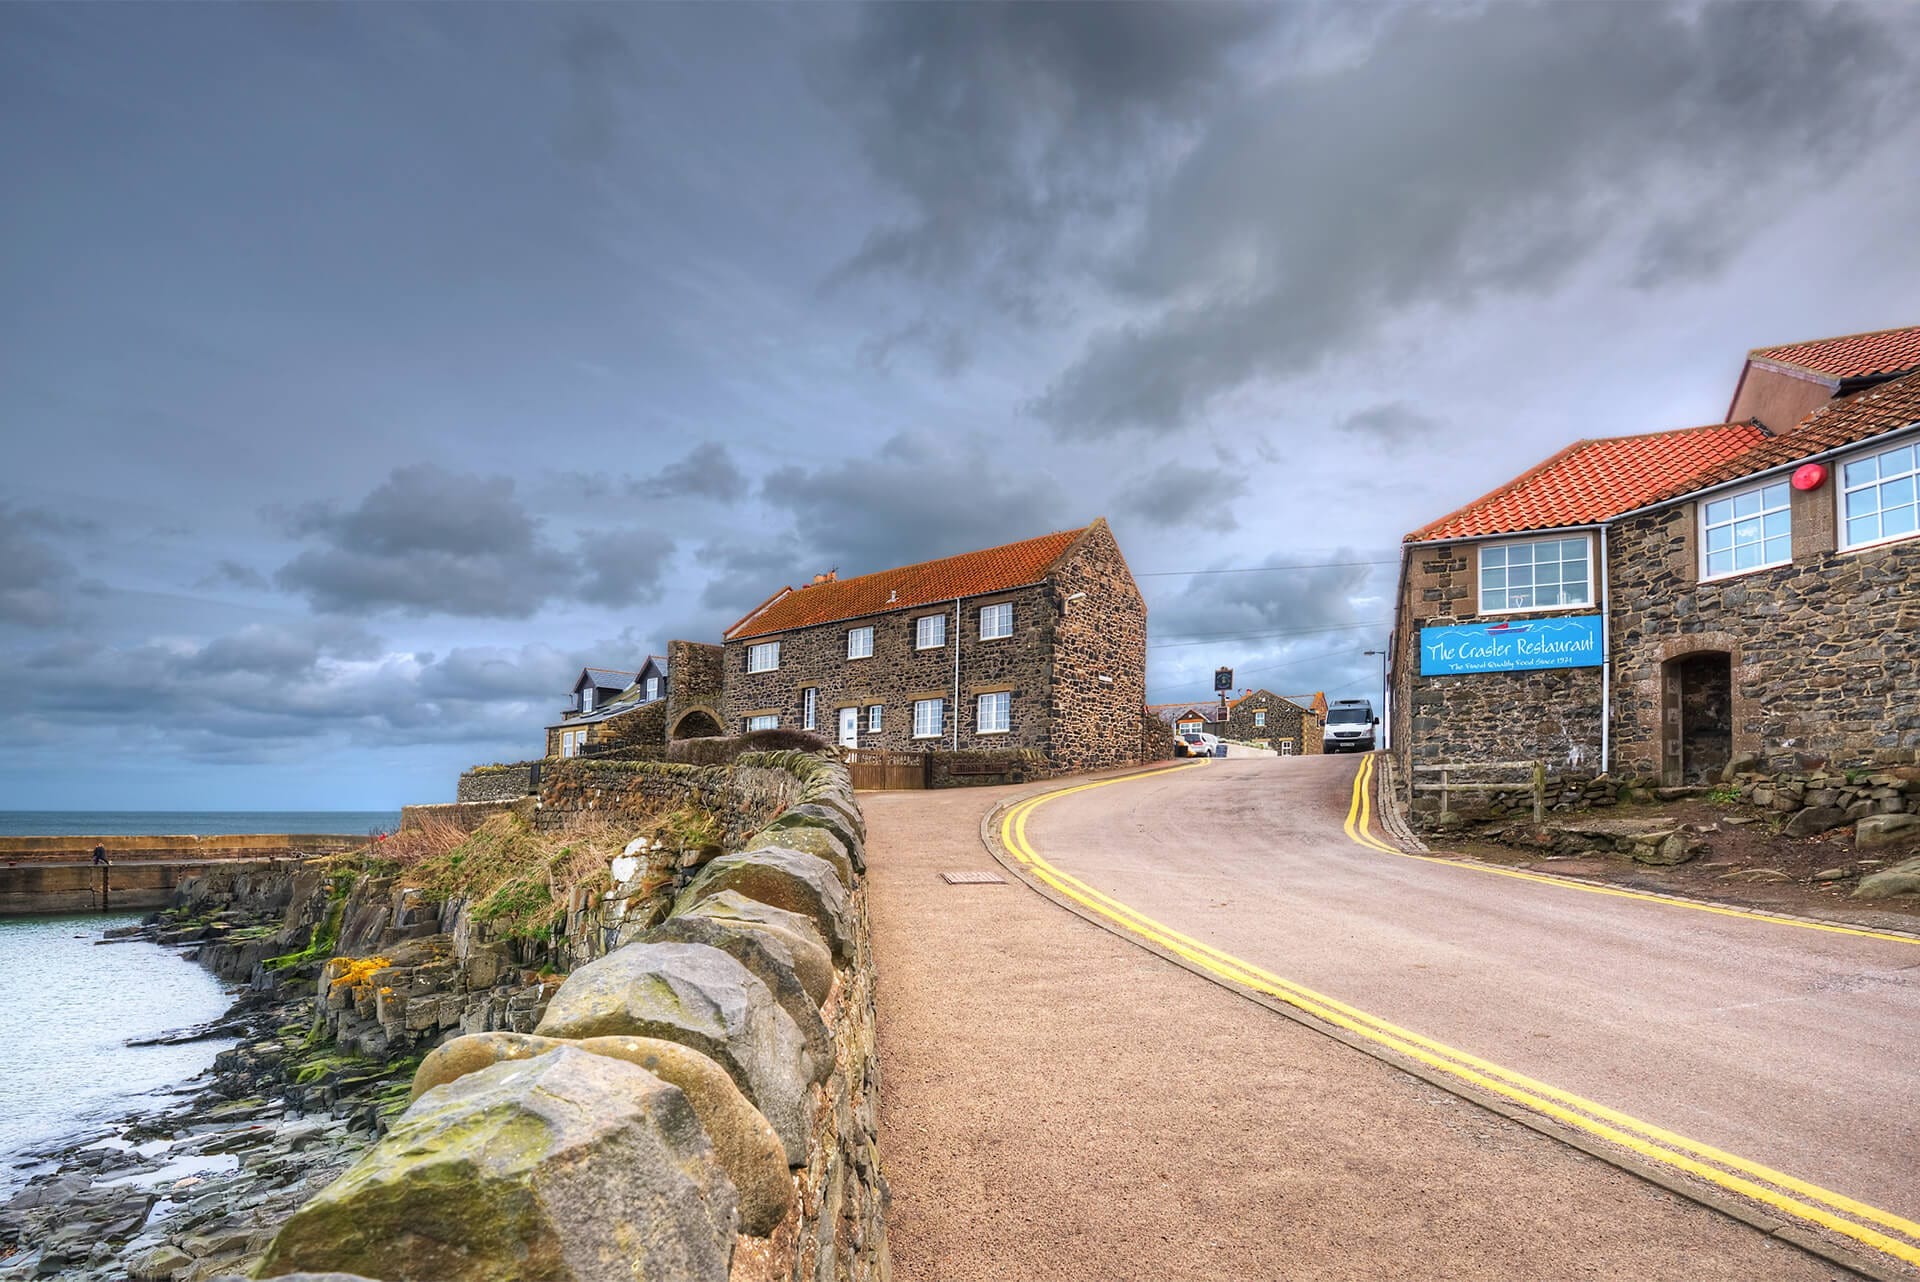 A view of The Craster Restaurant from the bottom of the hill in Craster, Northumberland